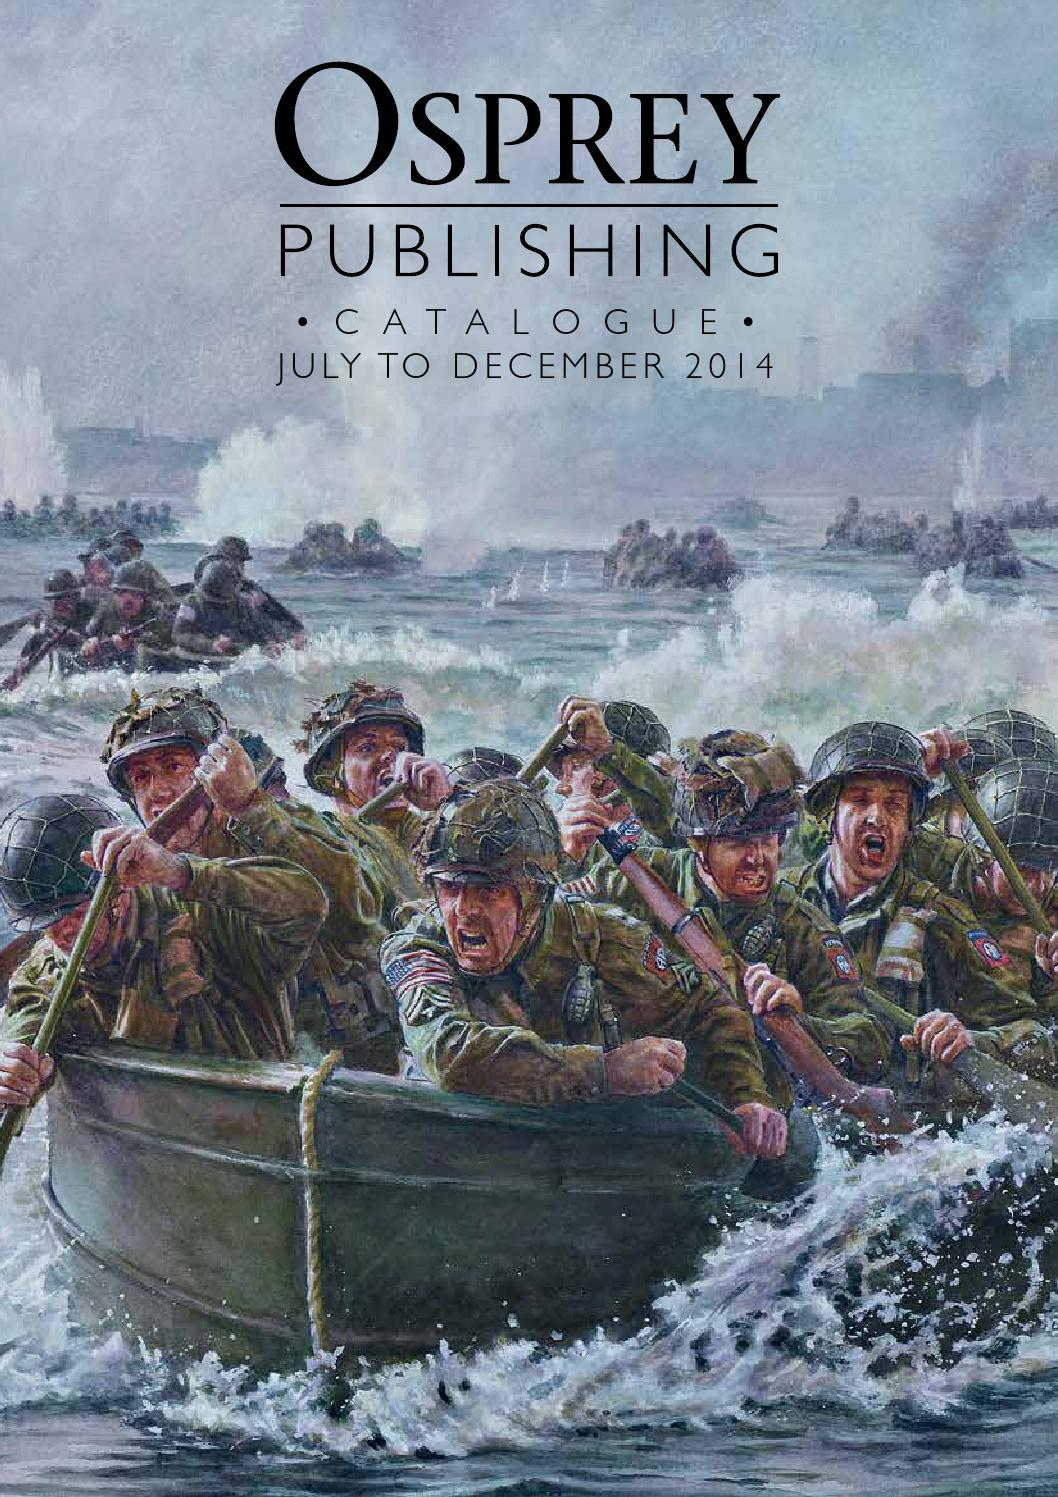 Osprey July December 2014 Catalogue By Osprey Publishing